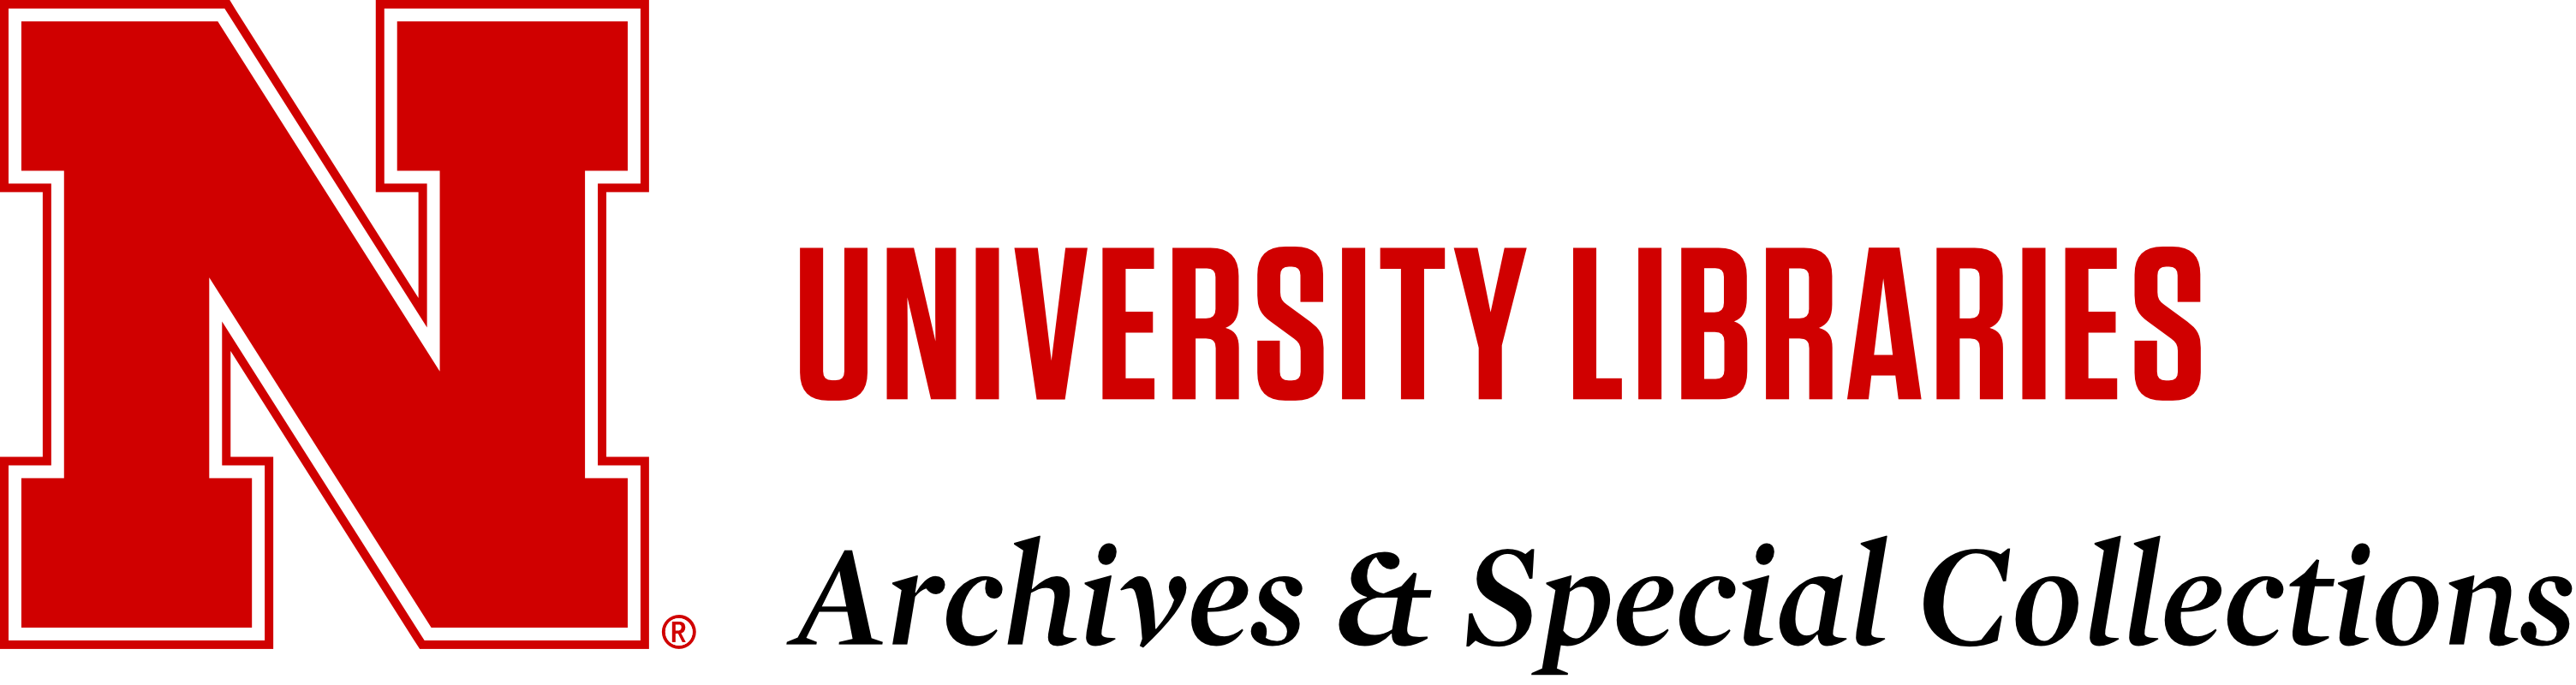 Archives & Special Collections, University of Nebraska-Lincoln